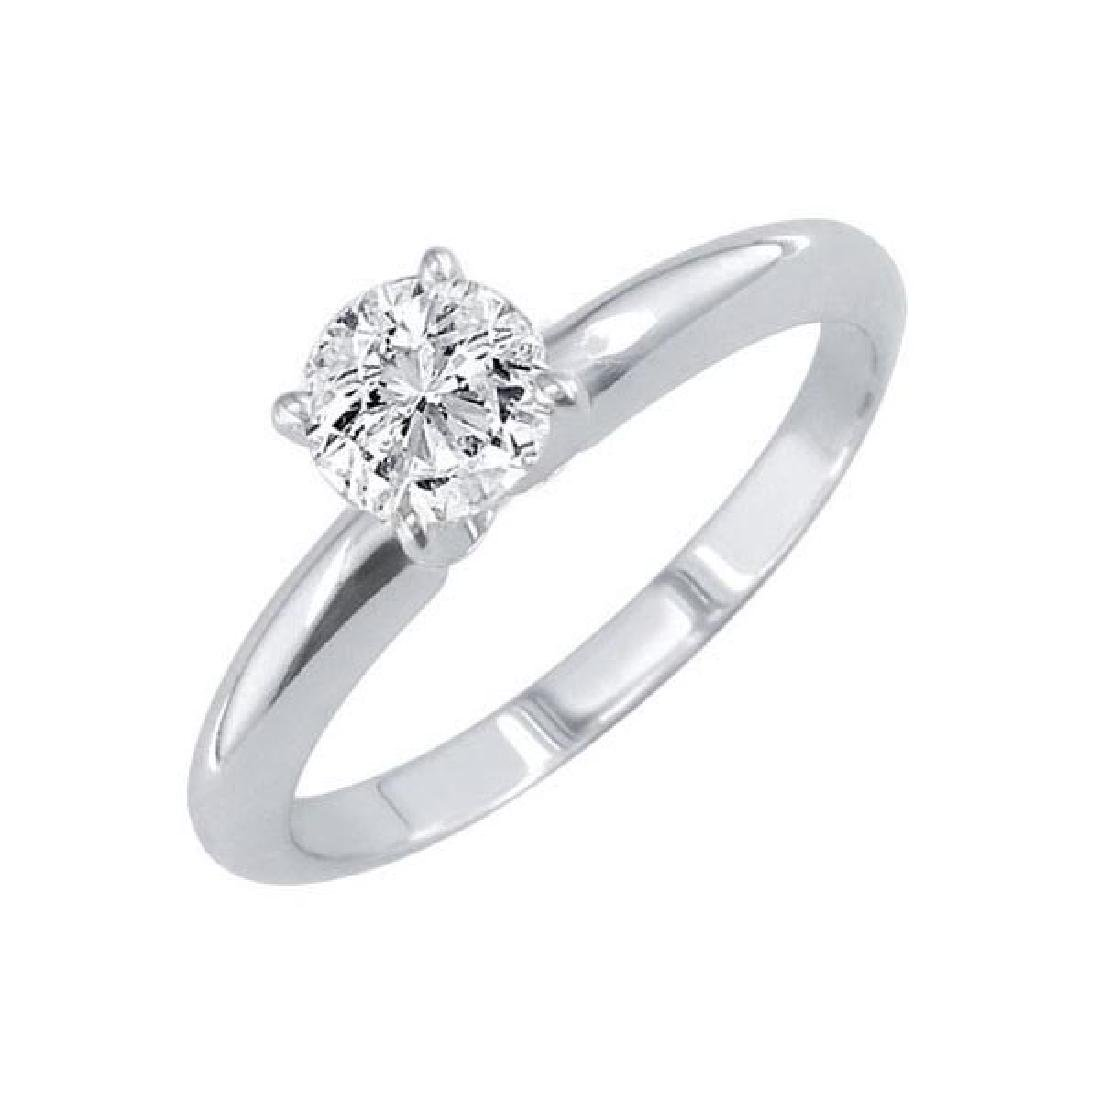 Certified 0.88 CTW Round Diamond Solitaire 14k Ring D/I